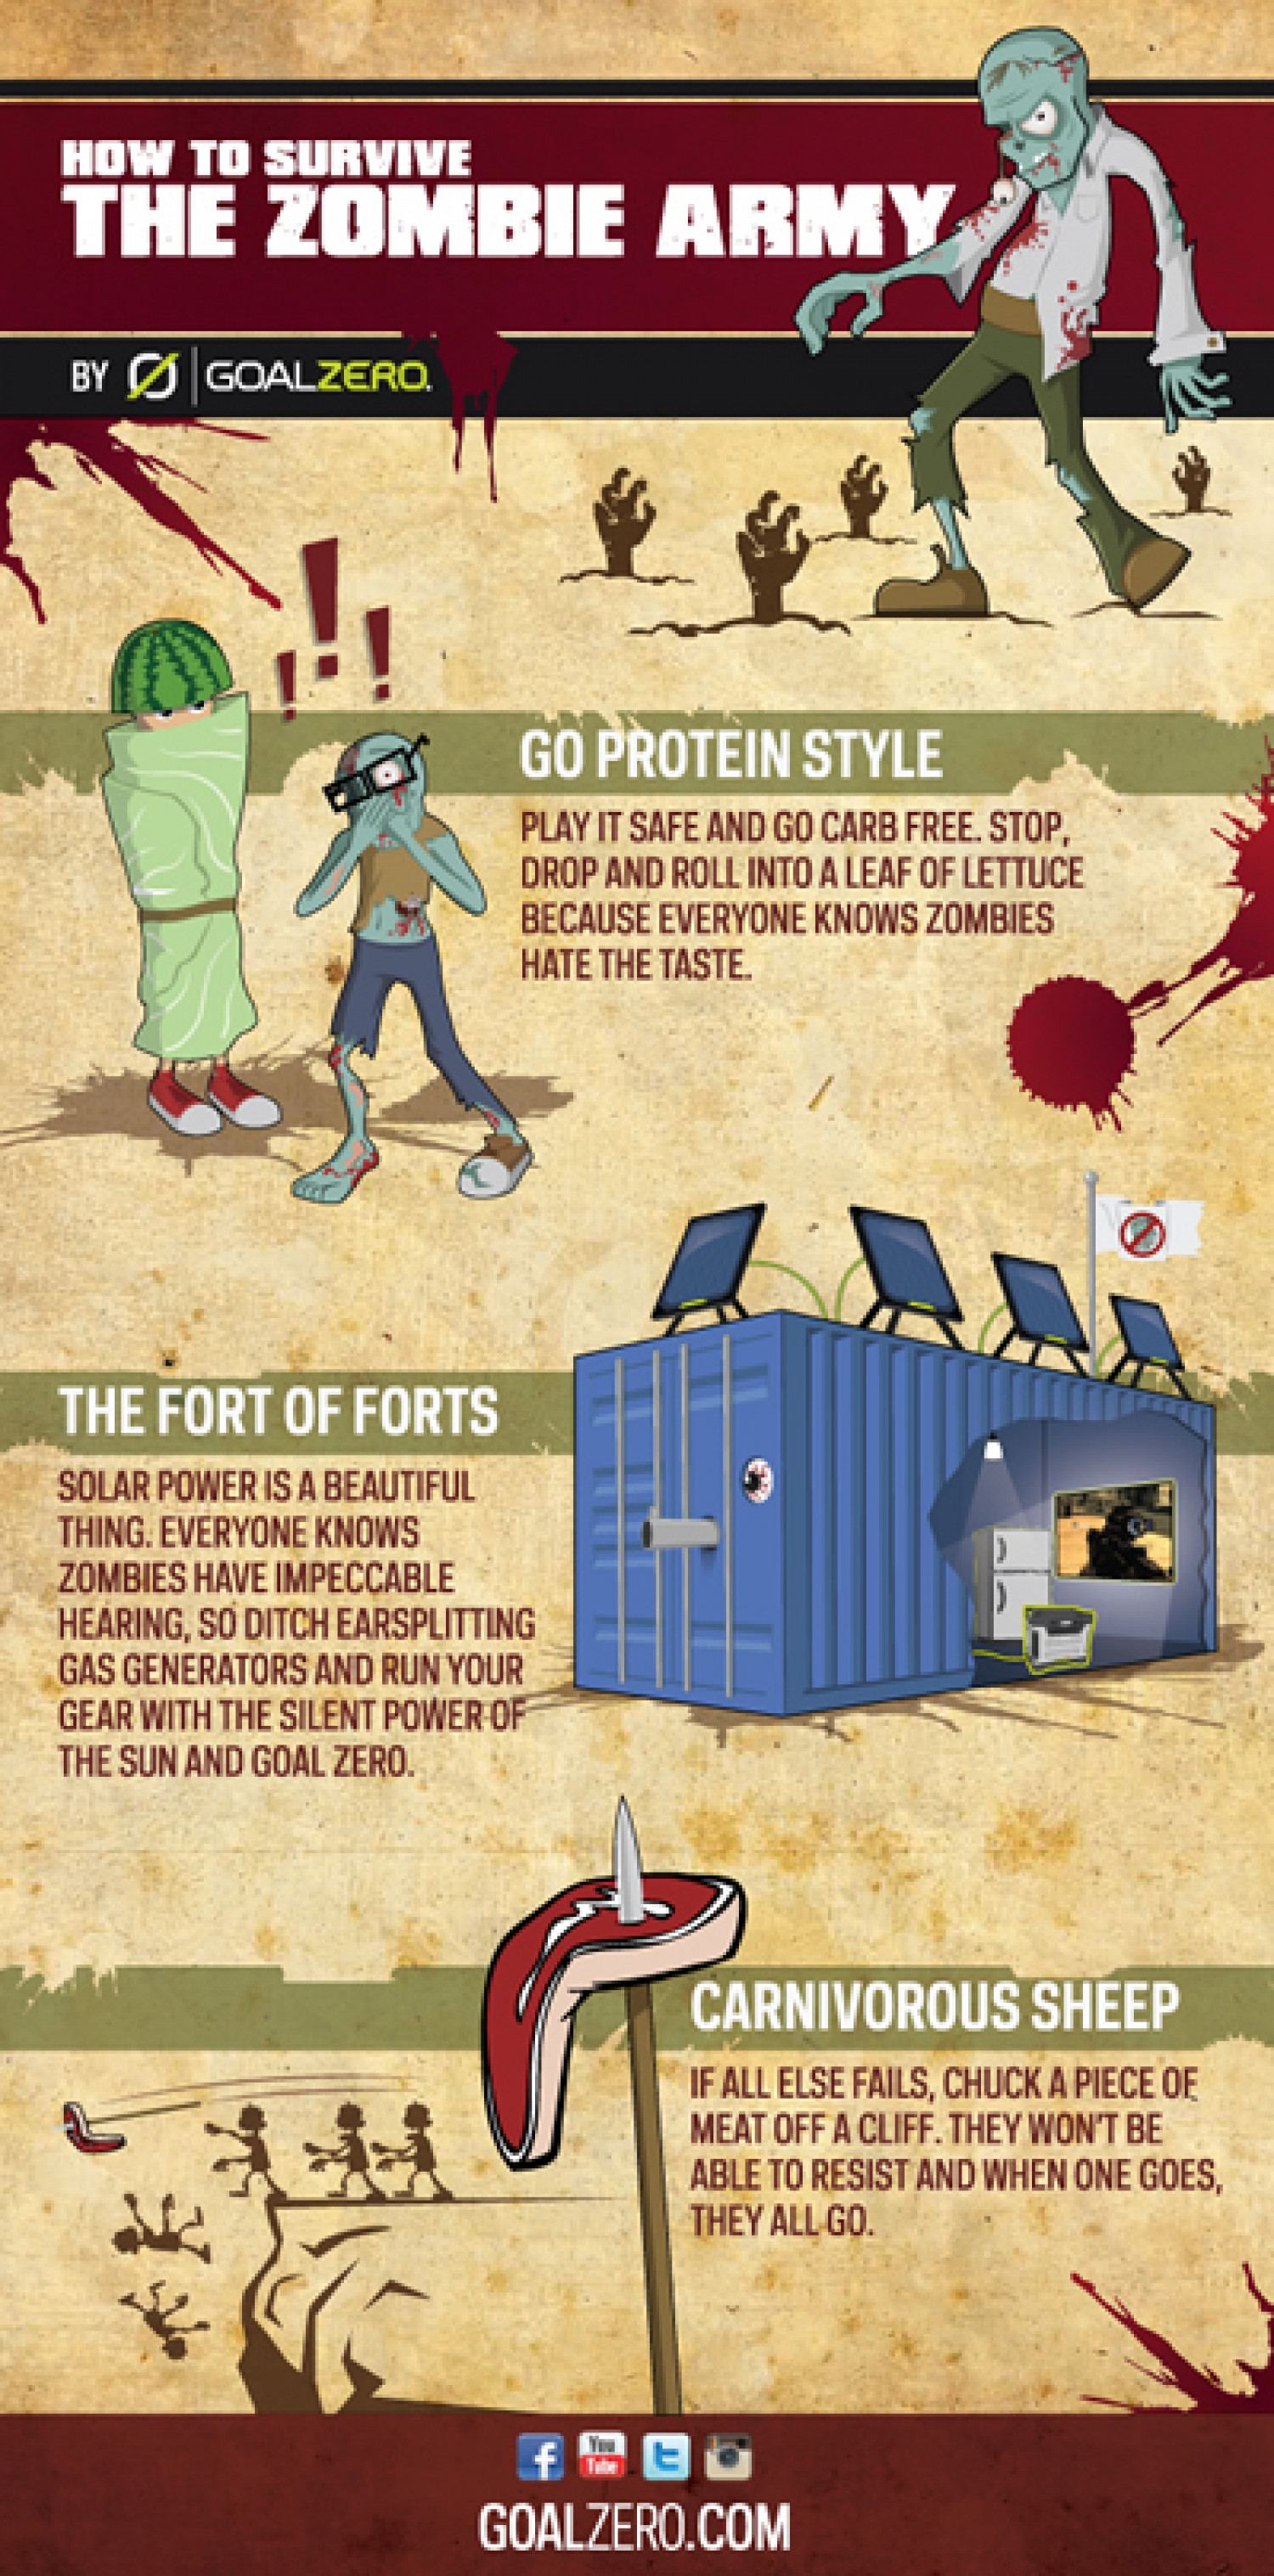 How to Survive the Zombie Army Infographic